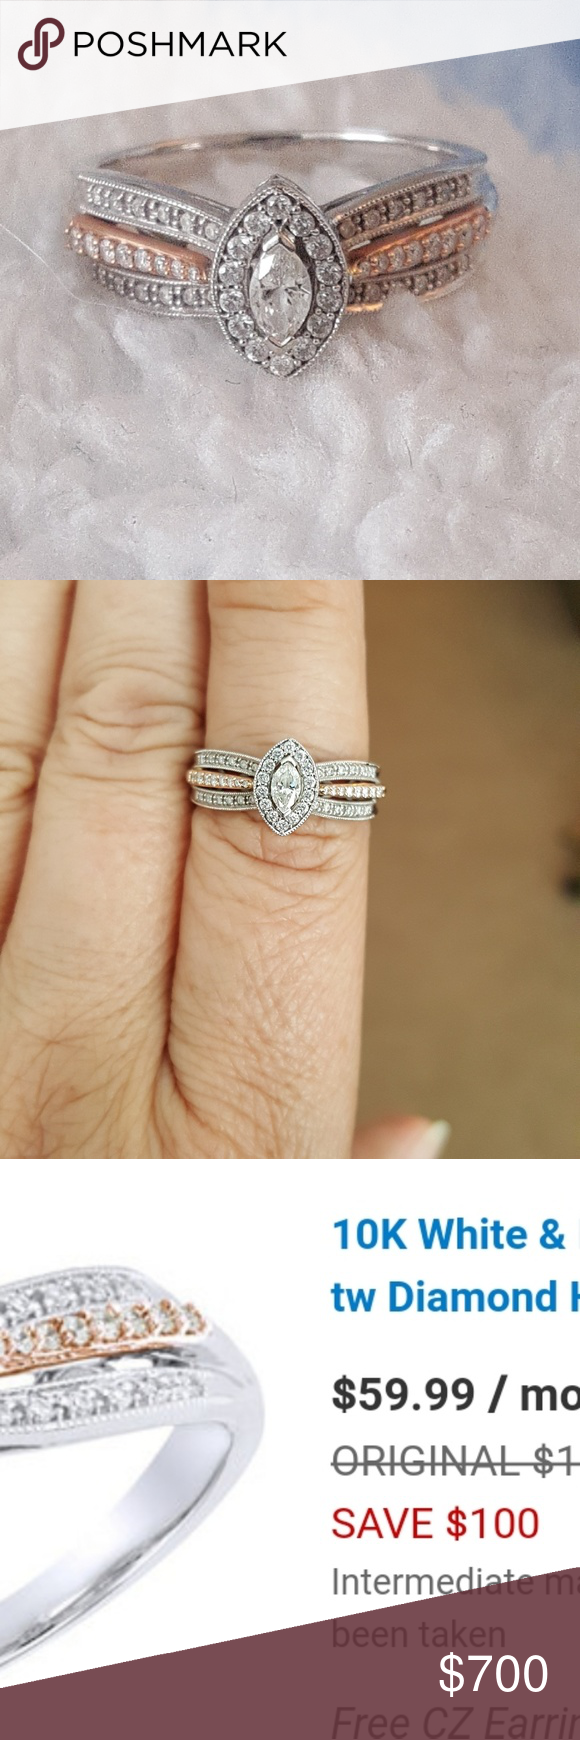 Ring 10 Carat White And Rose Gold Ring 3 8 Carat Diamonds Paid Original Price Not Mark Down Price Only Wore For About 1 Mon With Images Rings Engagement Rings Jewelry